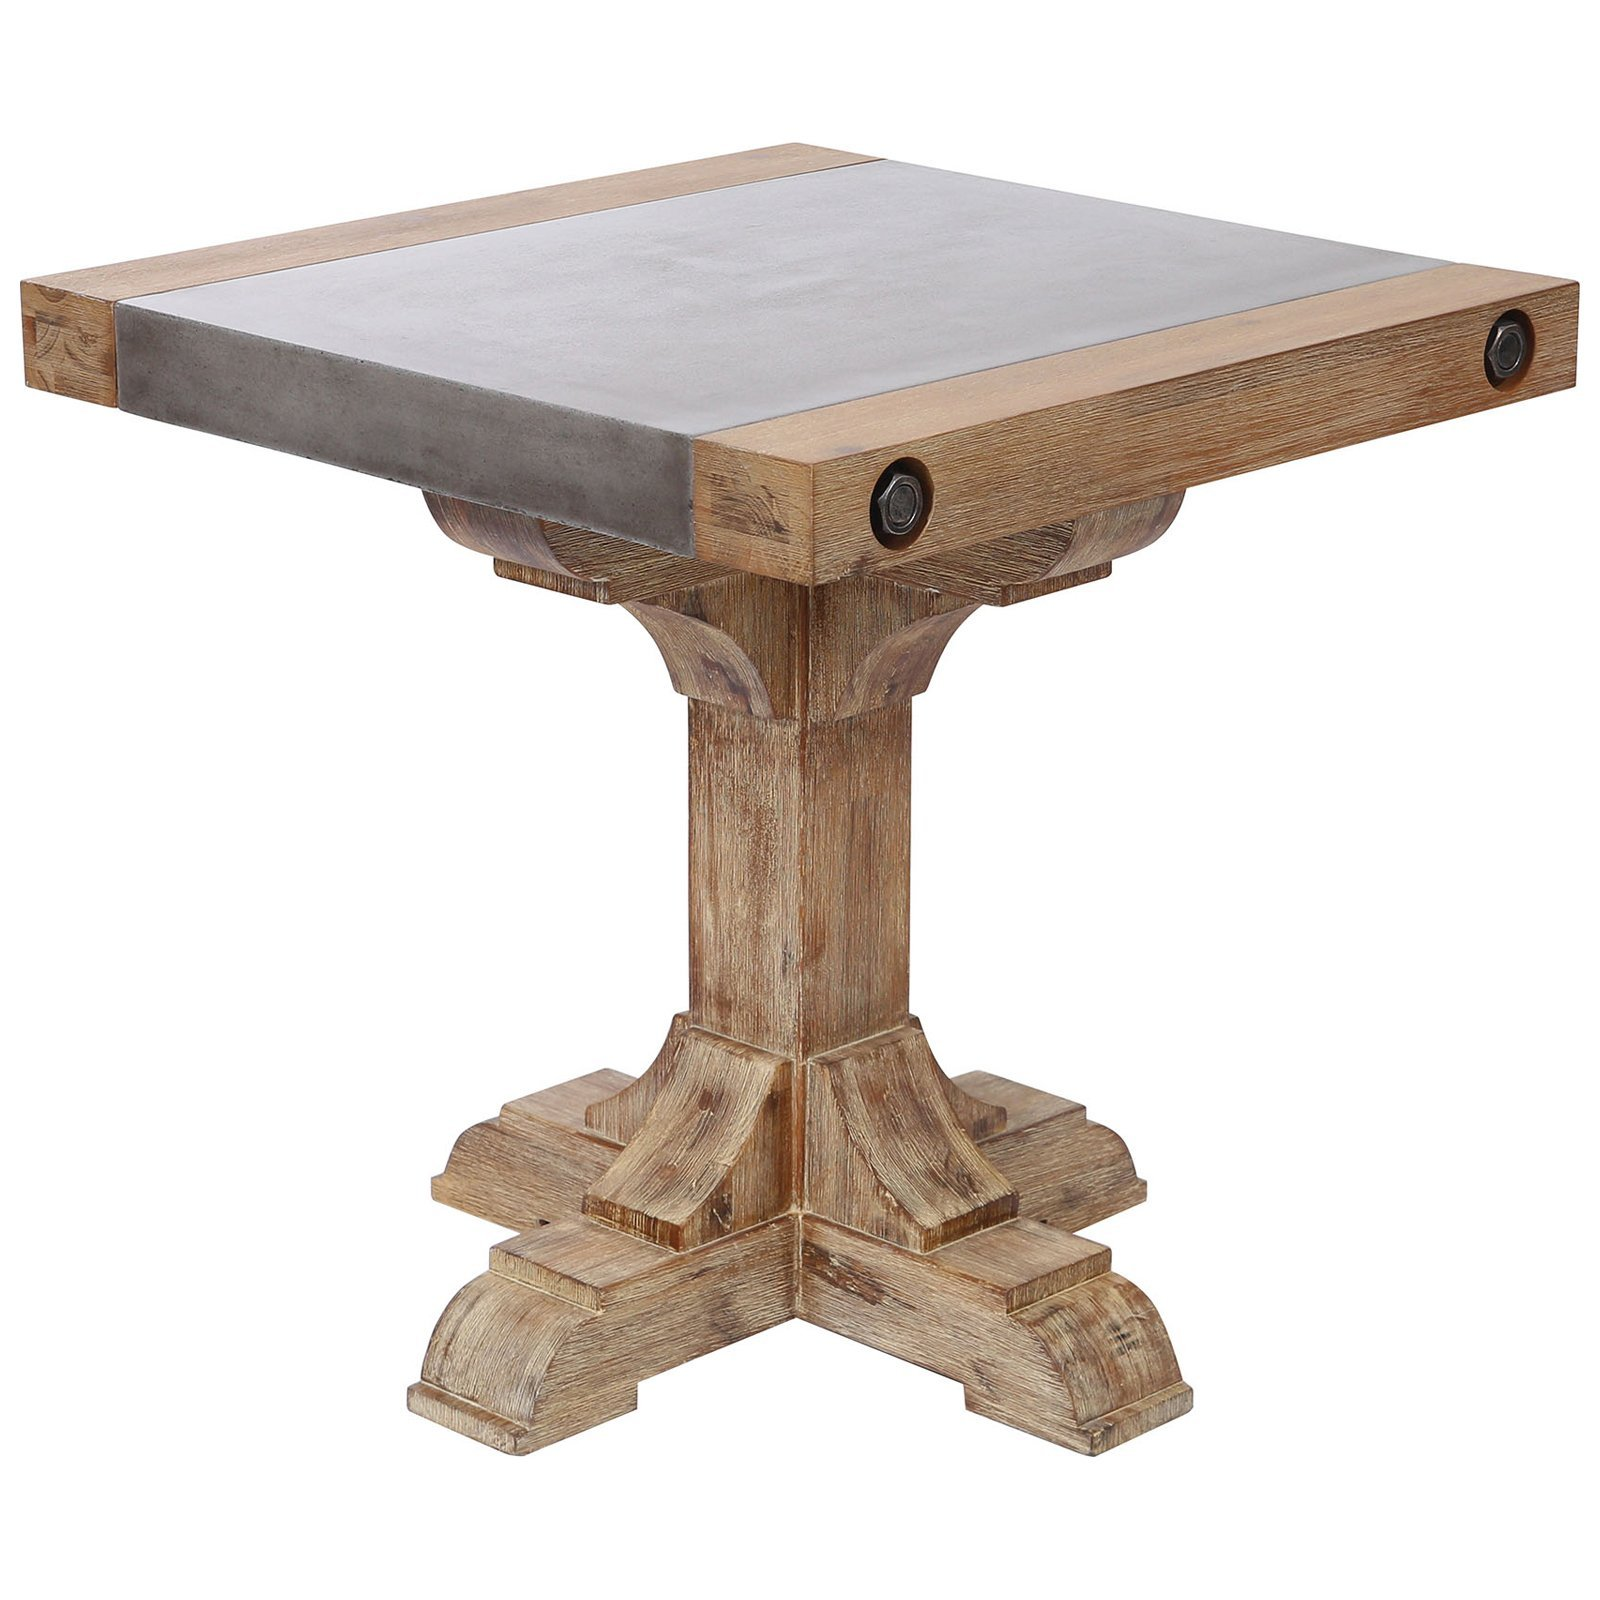 pirate concrete and wood accent table transitional tables outdoor kingdom with waxed atlantic finish inch furniture legs marble top coffee bbq grills tablecloth umbrella hole west